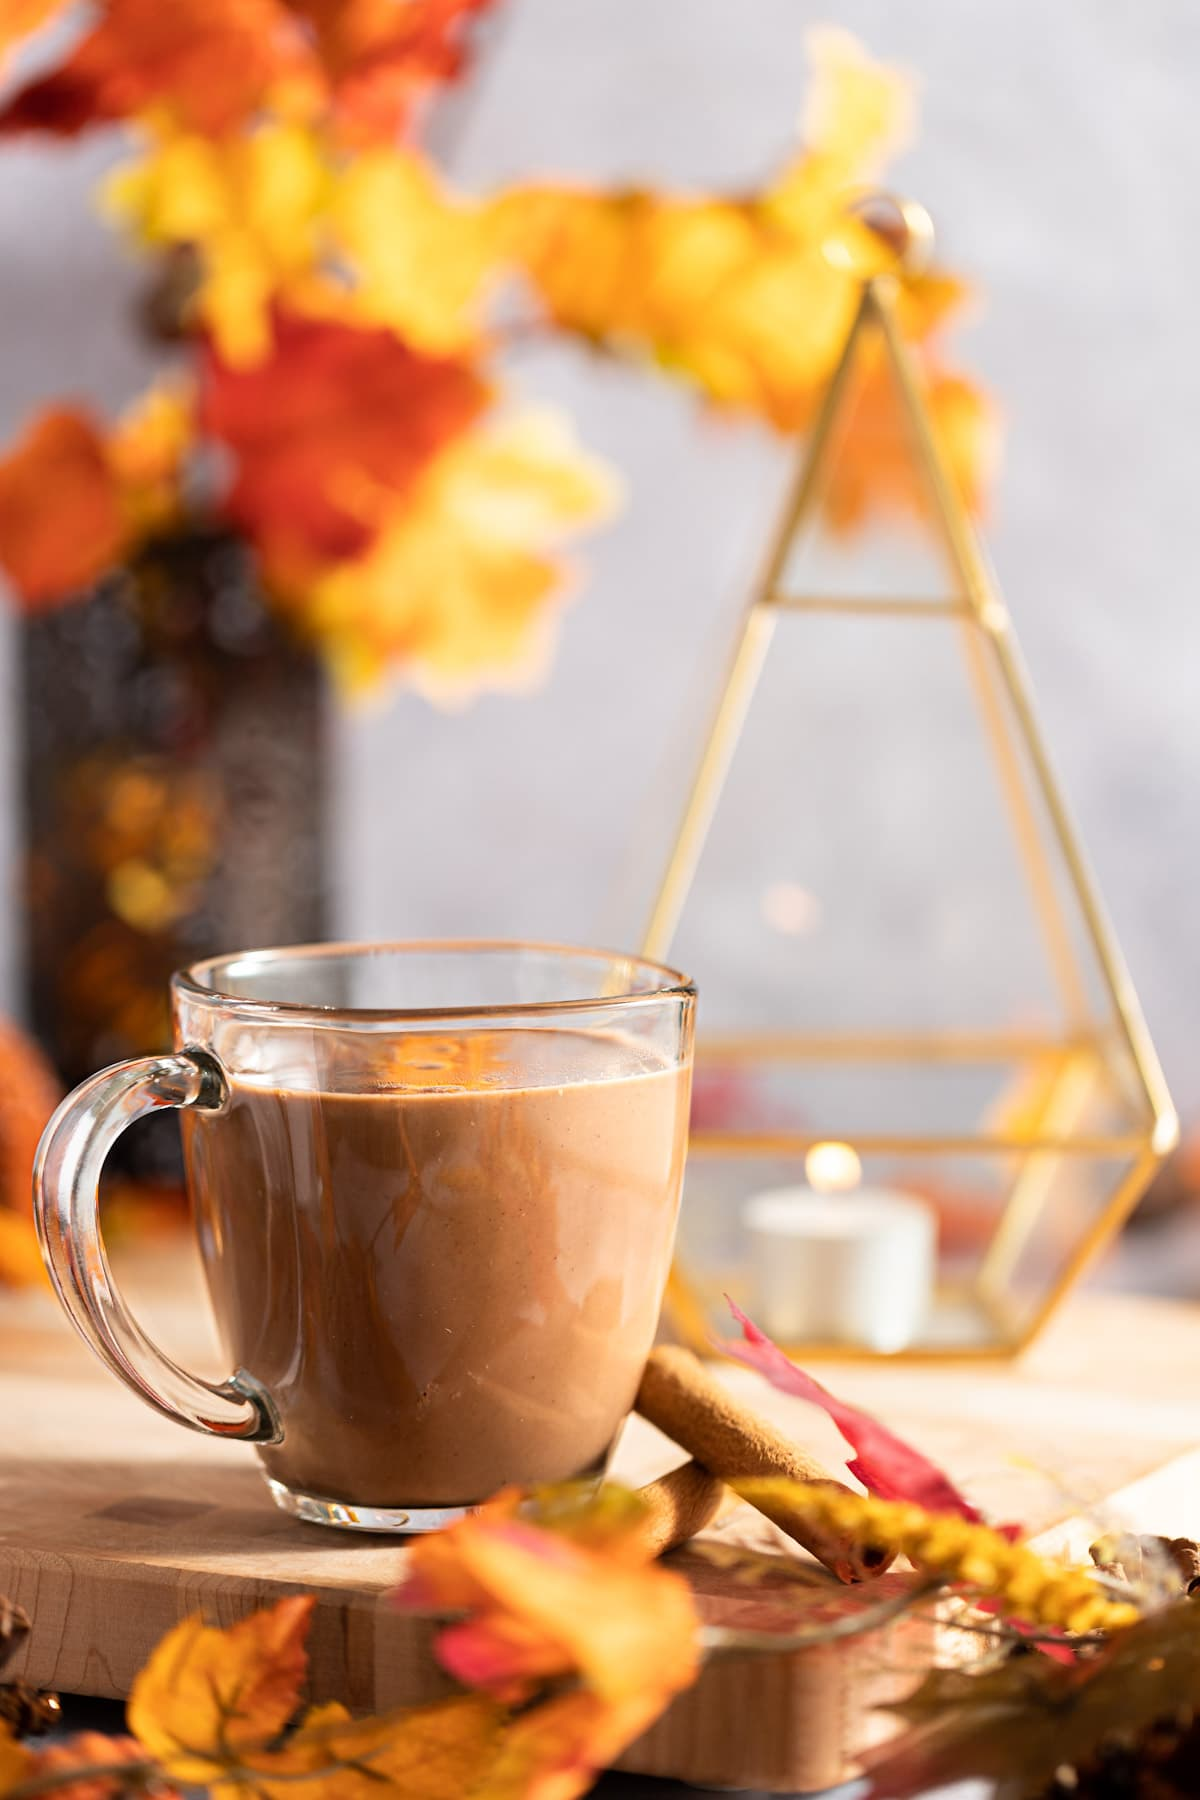 A cup of oat milk hot cocoa on a brown serving board, surrounded by orange leaves.